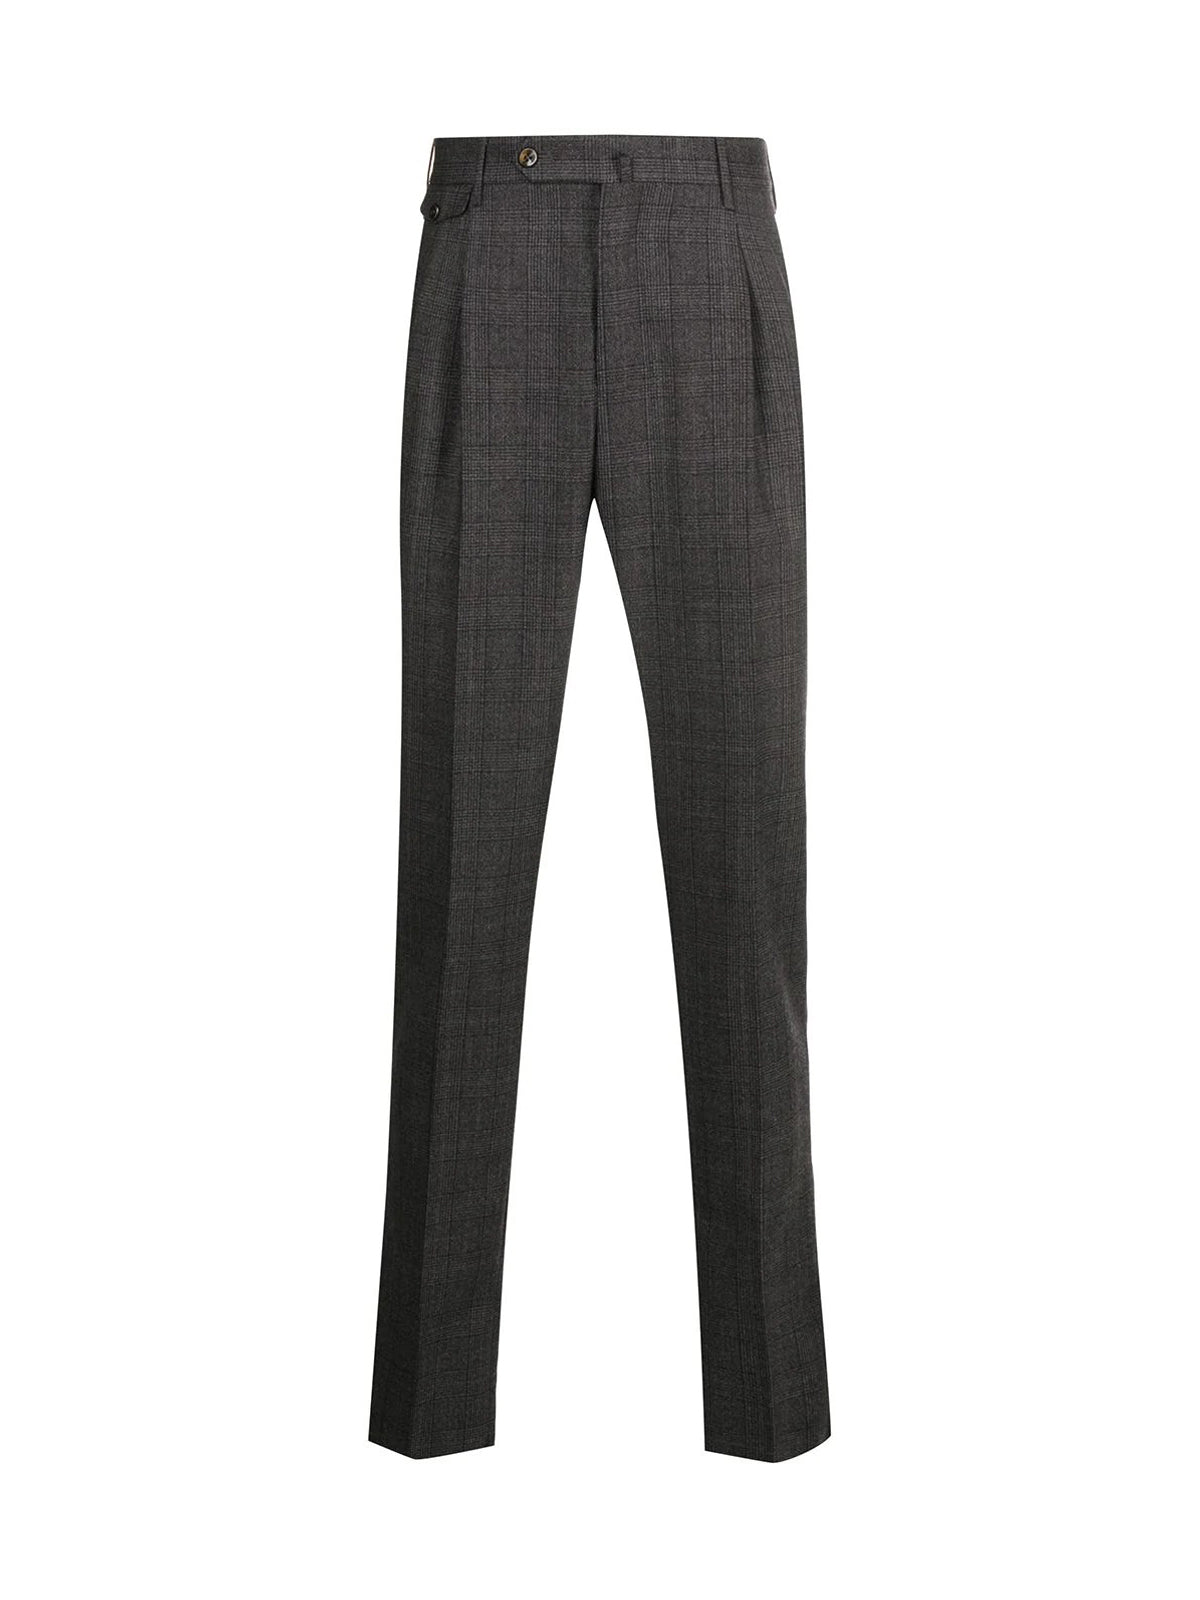 Tailored trousers in squares